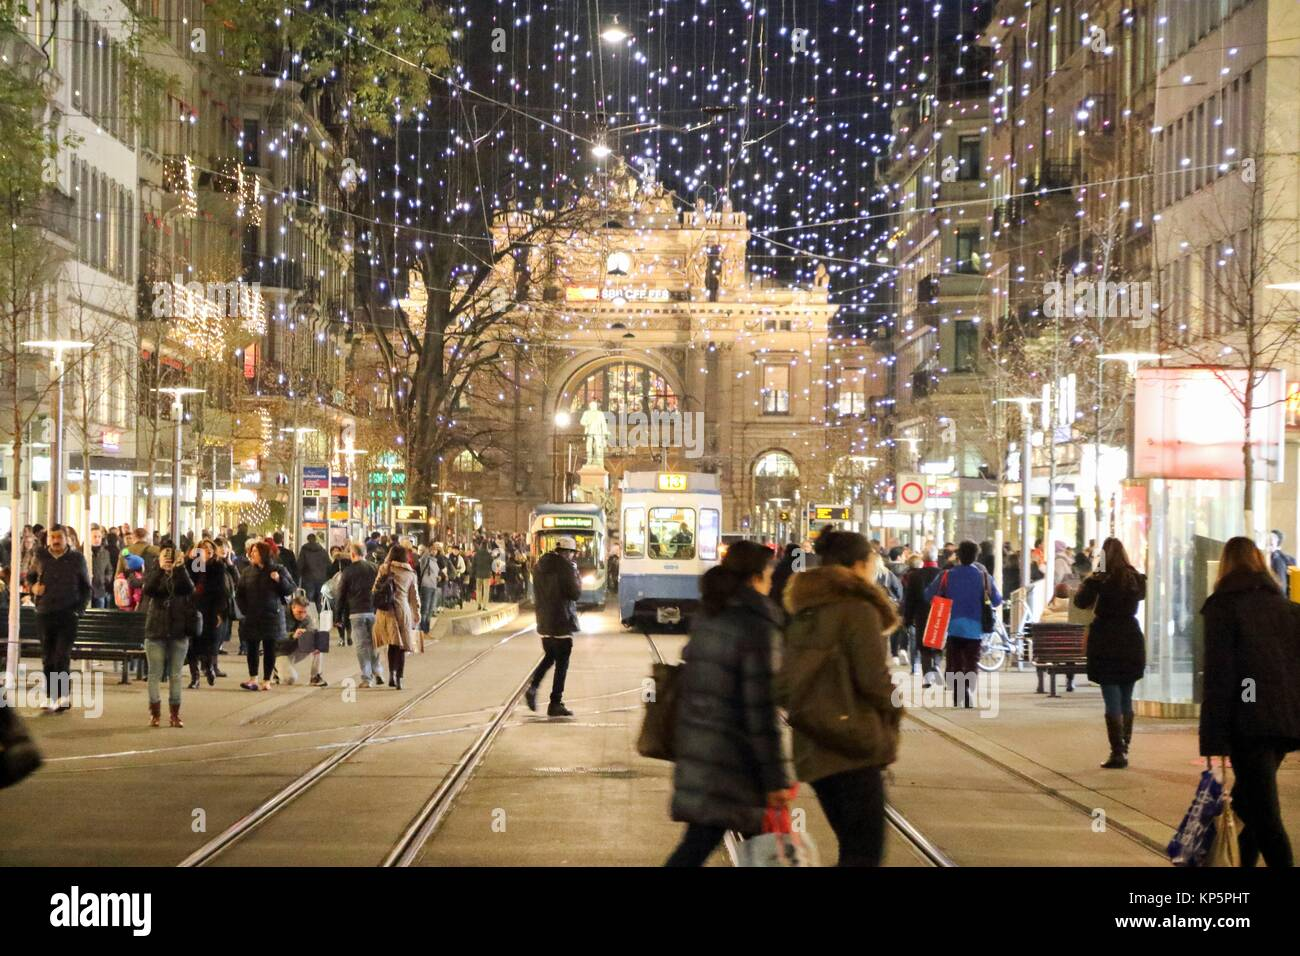 Bahnhofstrasse in Zurich decorated for Christmas on December 7, 2015. - Stock Image